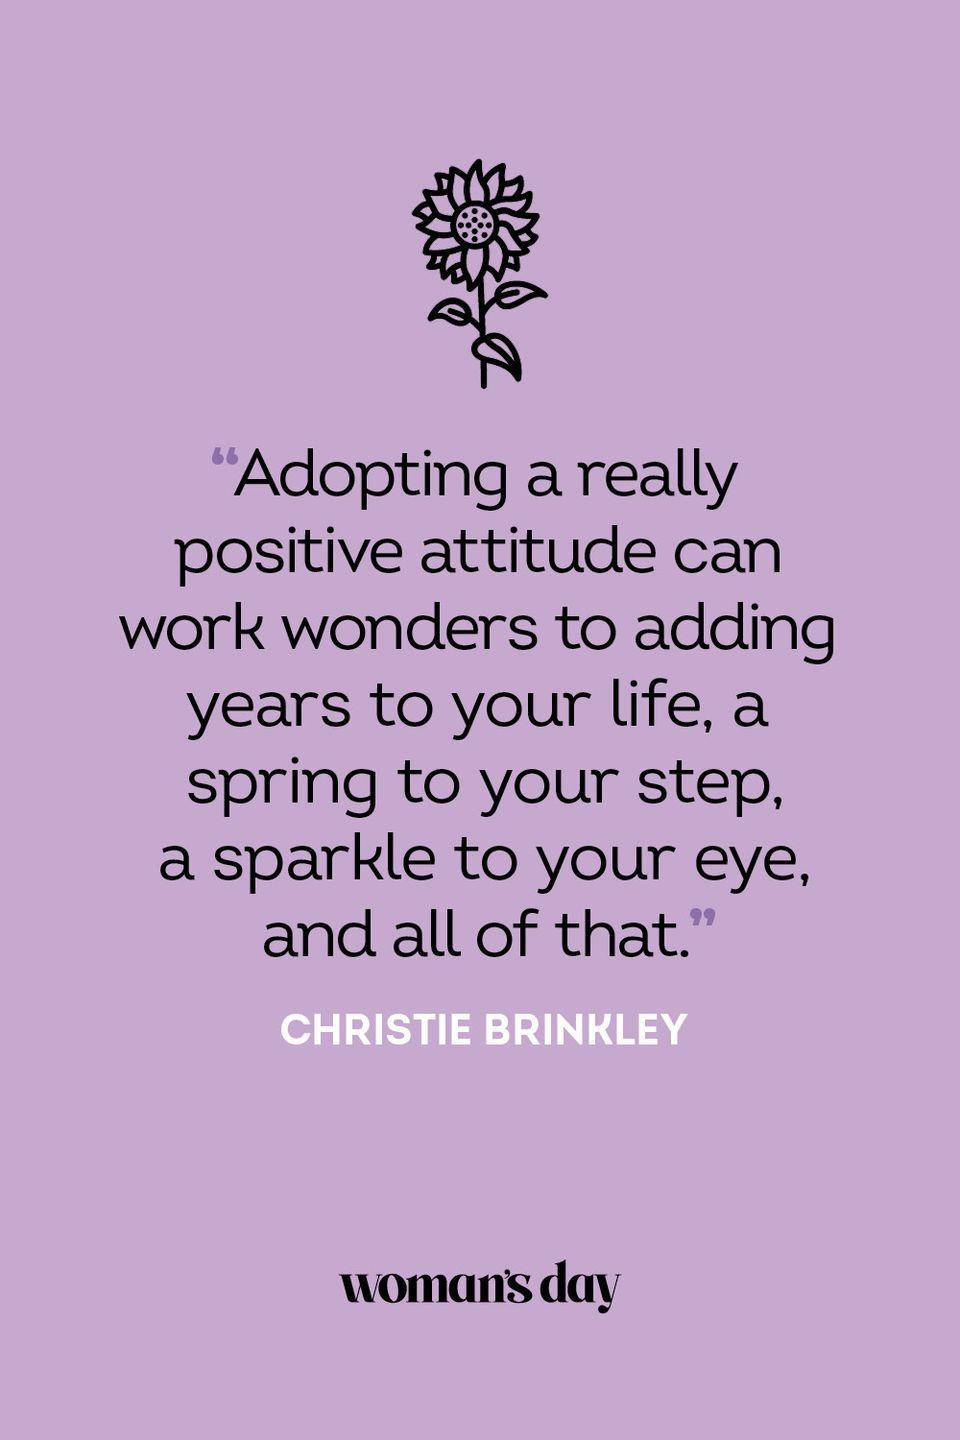 <p>Adopting a really positive attitude can work wonders to adding years to your life, a spring to your step, a sparkle to your eye, and all of that.</p>